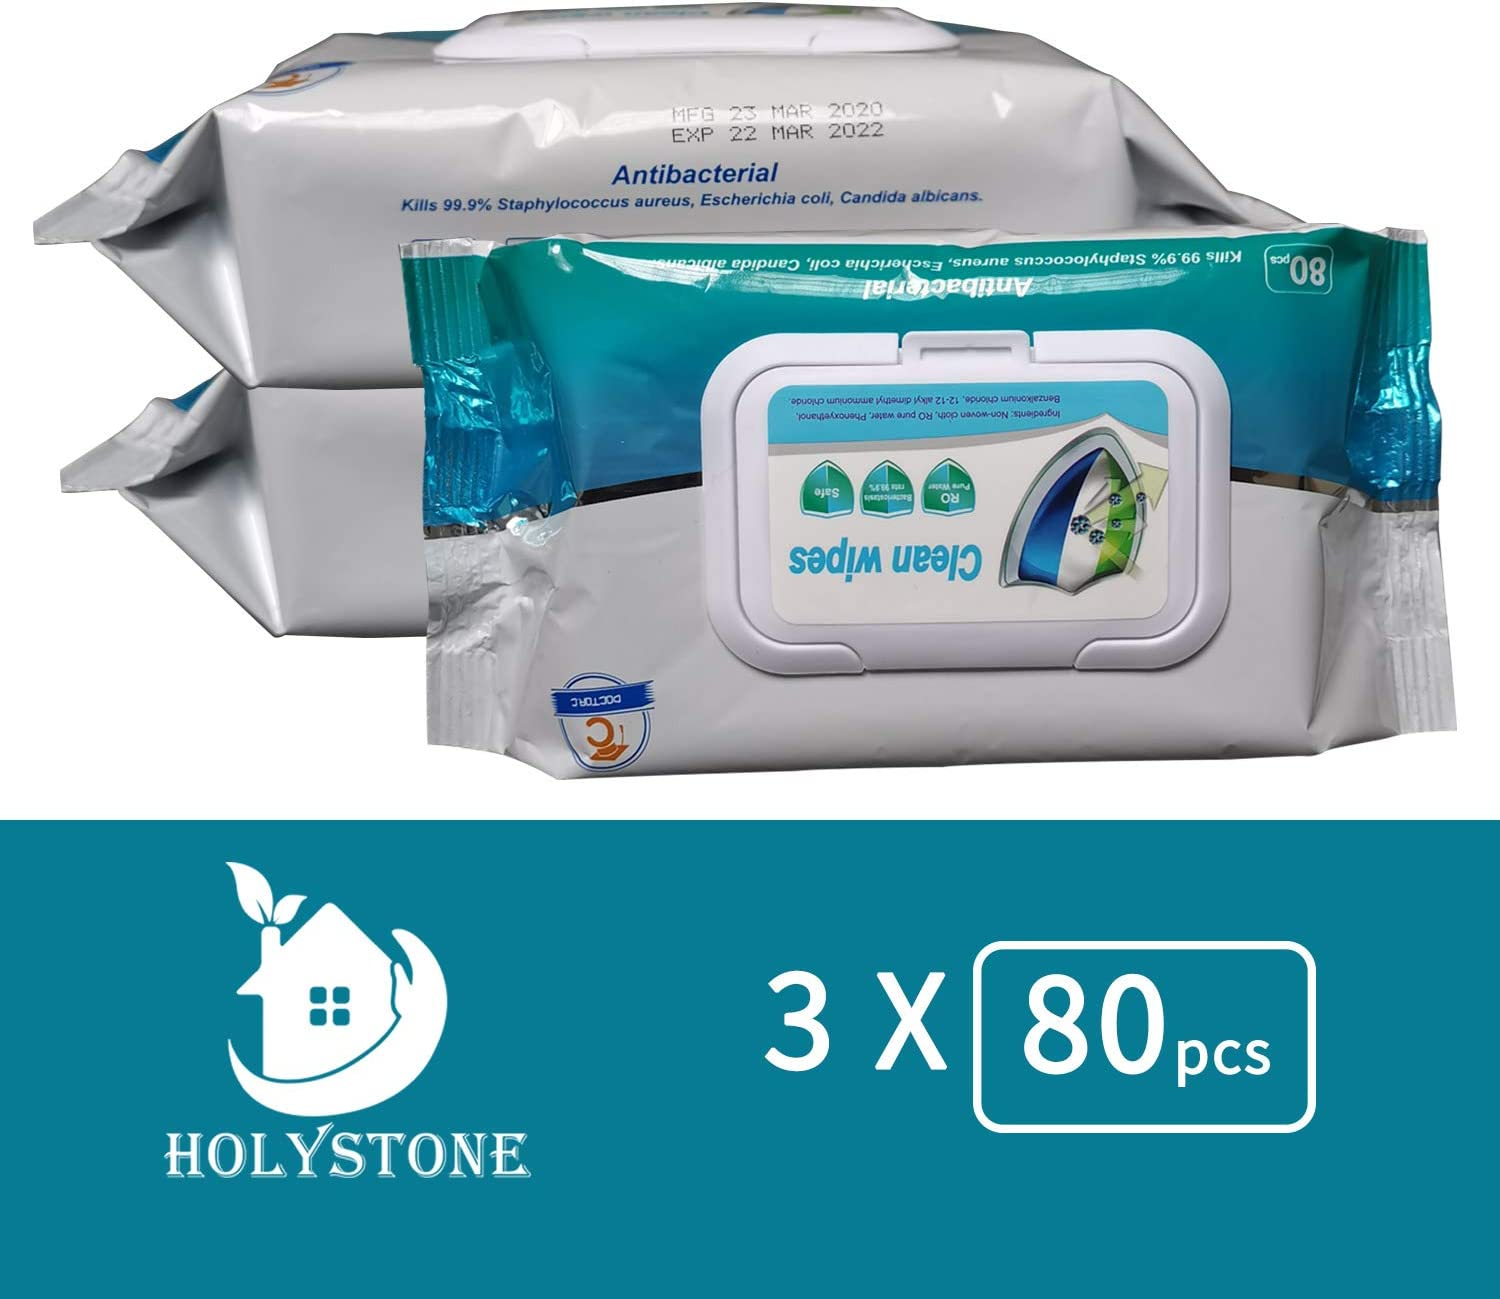 Wet Wipes Suitable for Family All Daily Protection Wet Wipes Household Wipes,3 Packs 240 Wipes Total 80 Wipes per Pack